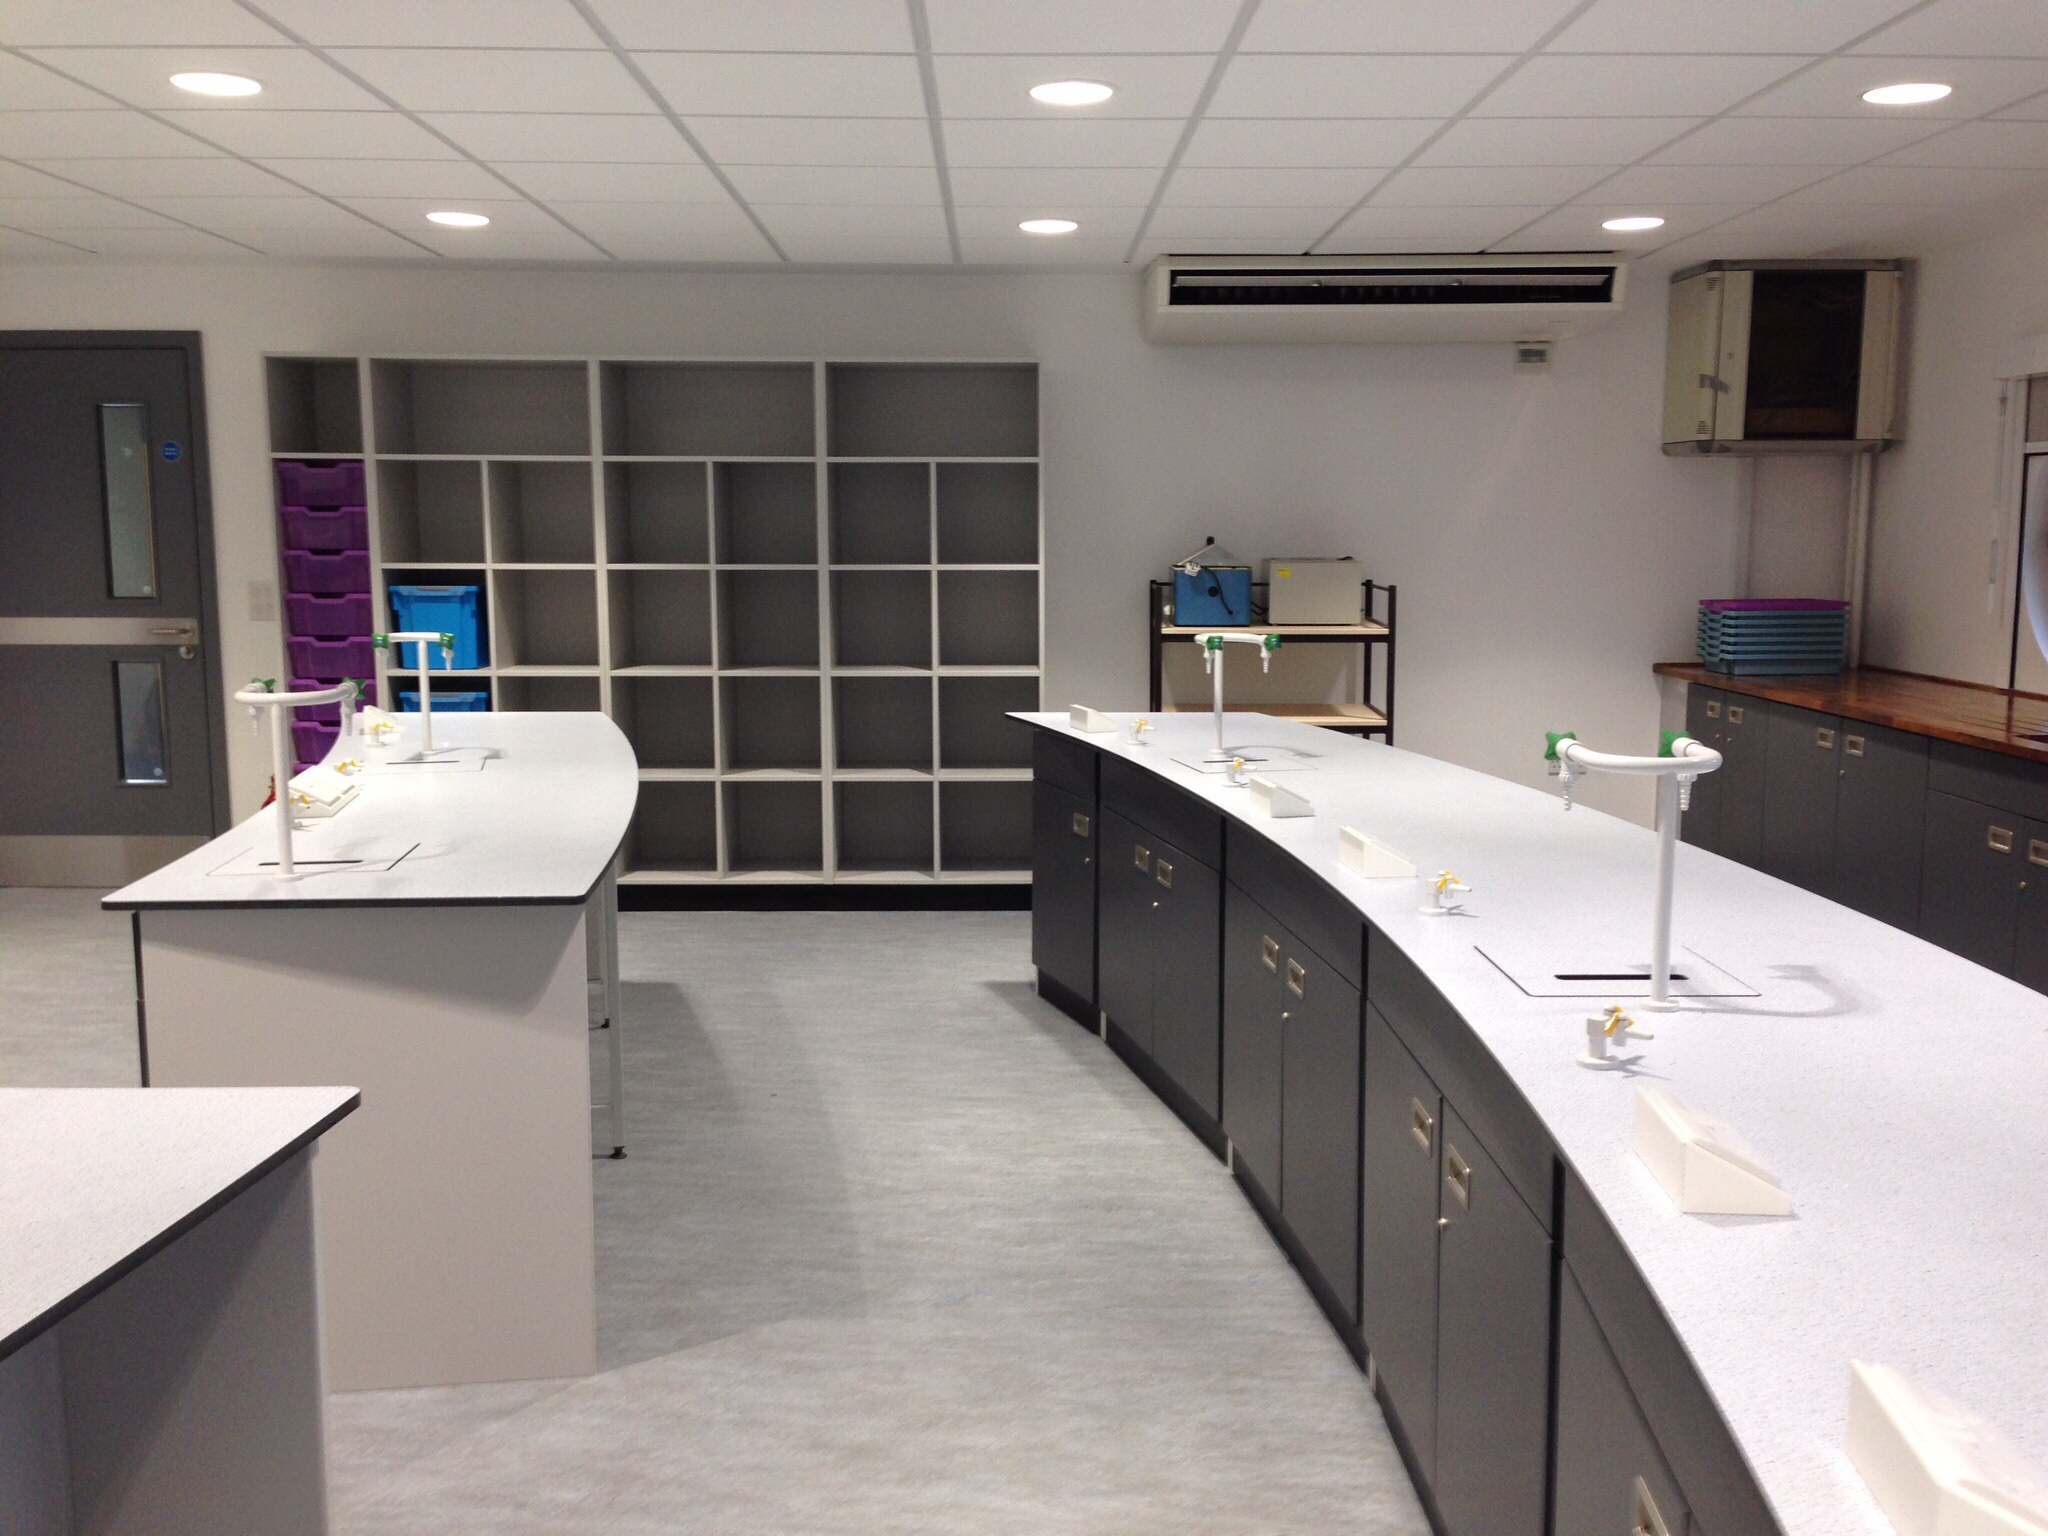 AJT LAboratory Furniture Design Associated Joinery Techniques School Refurbishment Trespa Worktops